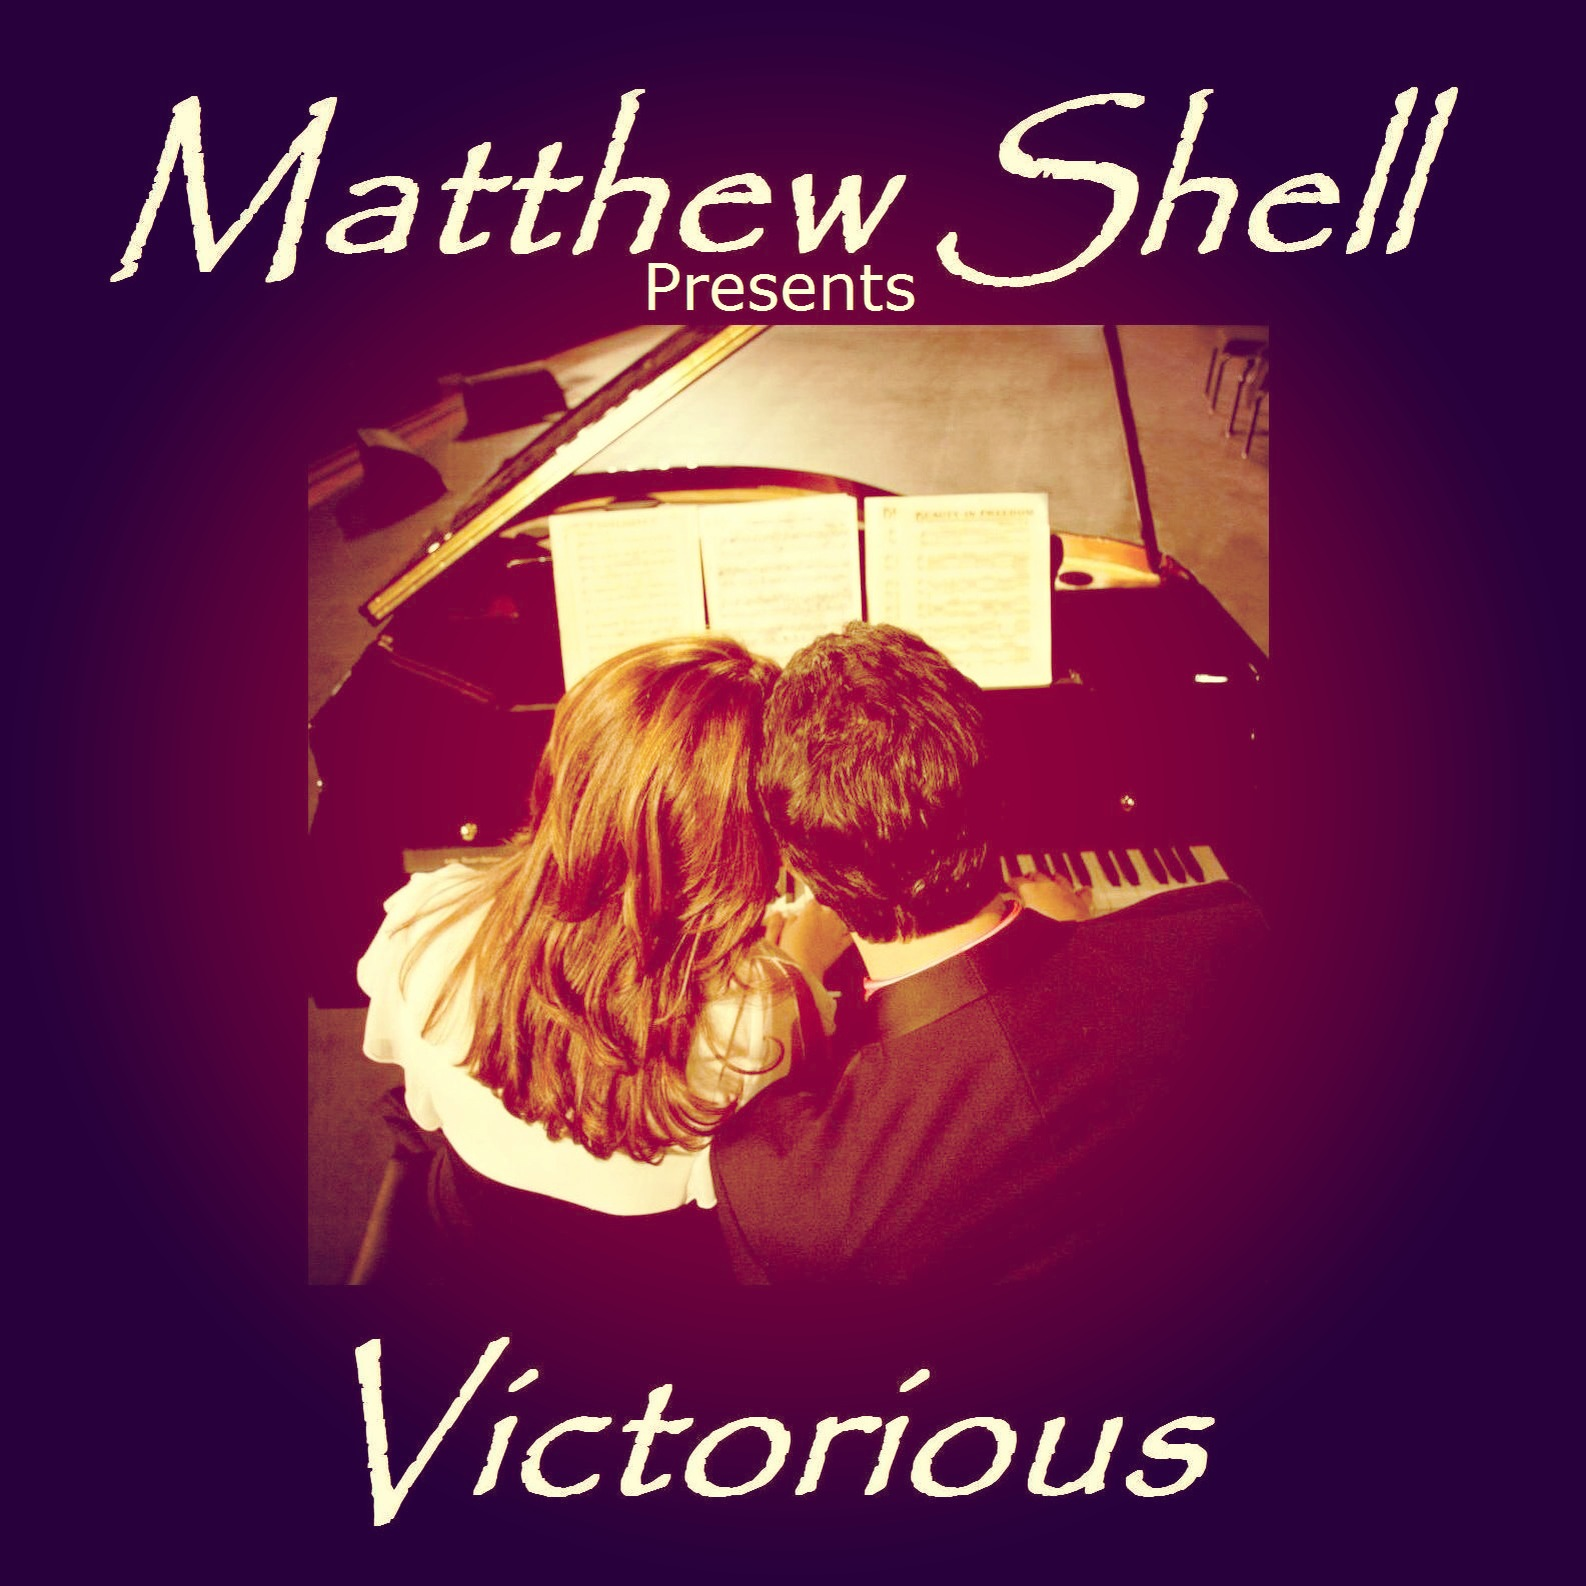 VICTORIOUS+%28Matthew+Shell+Presents%29+